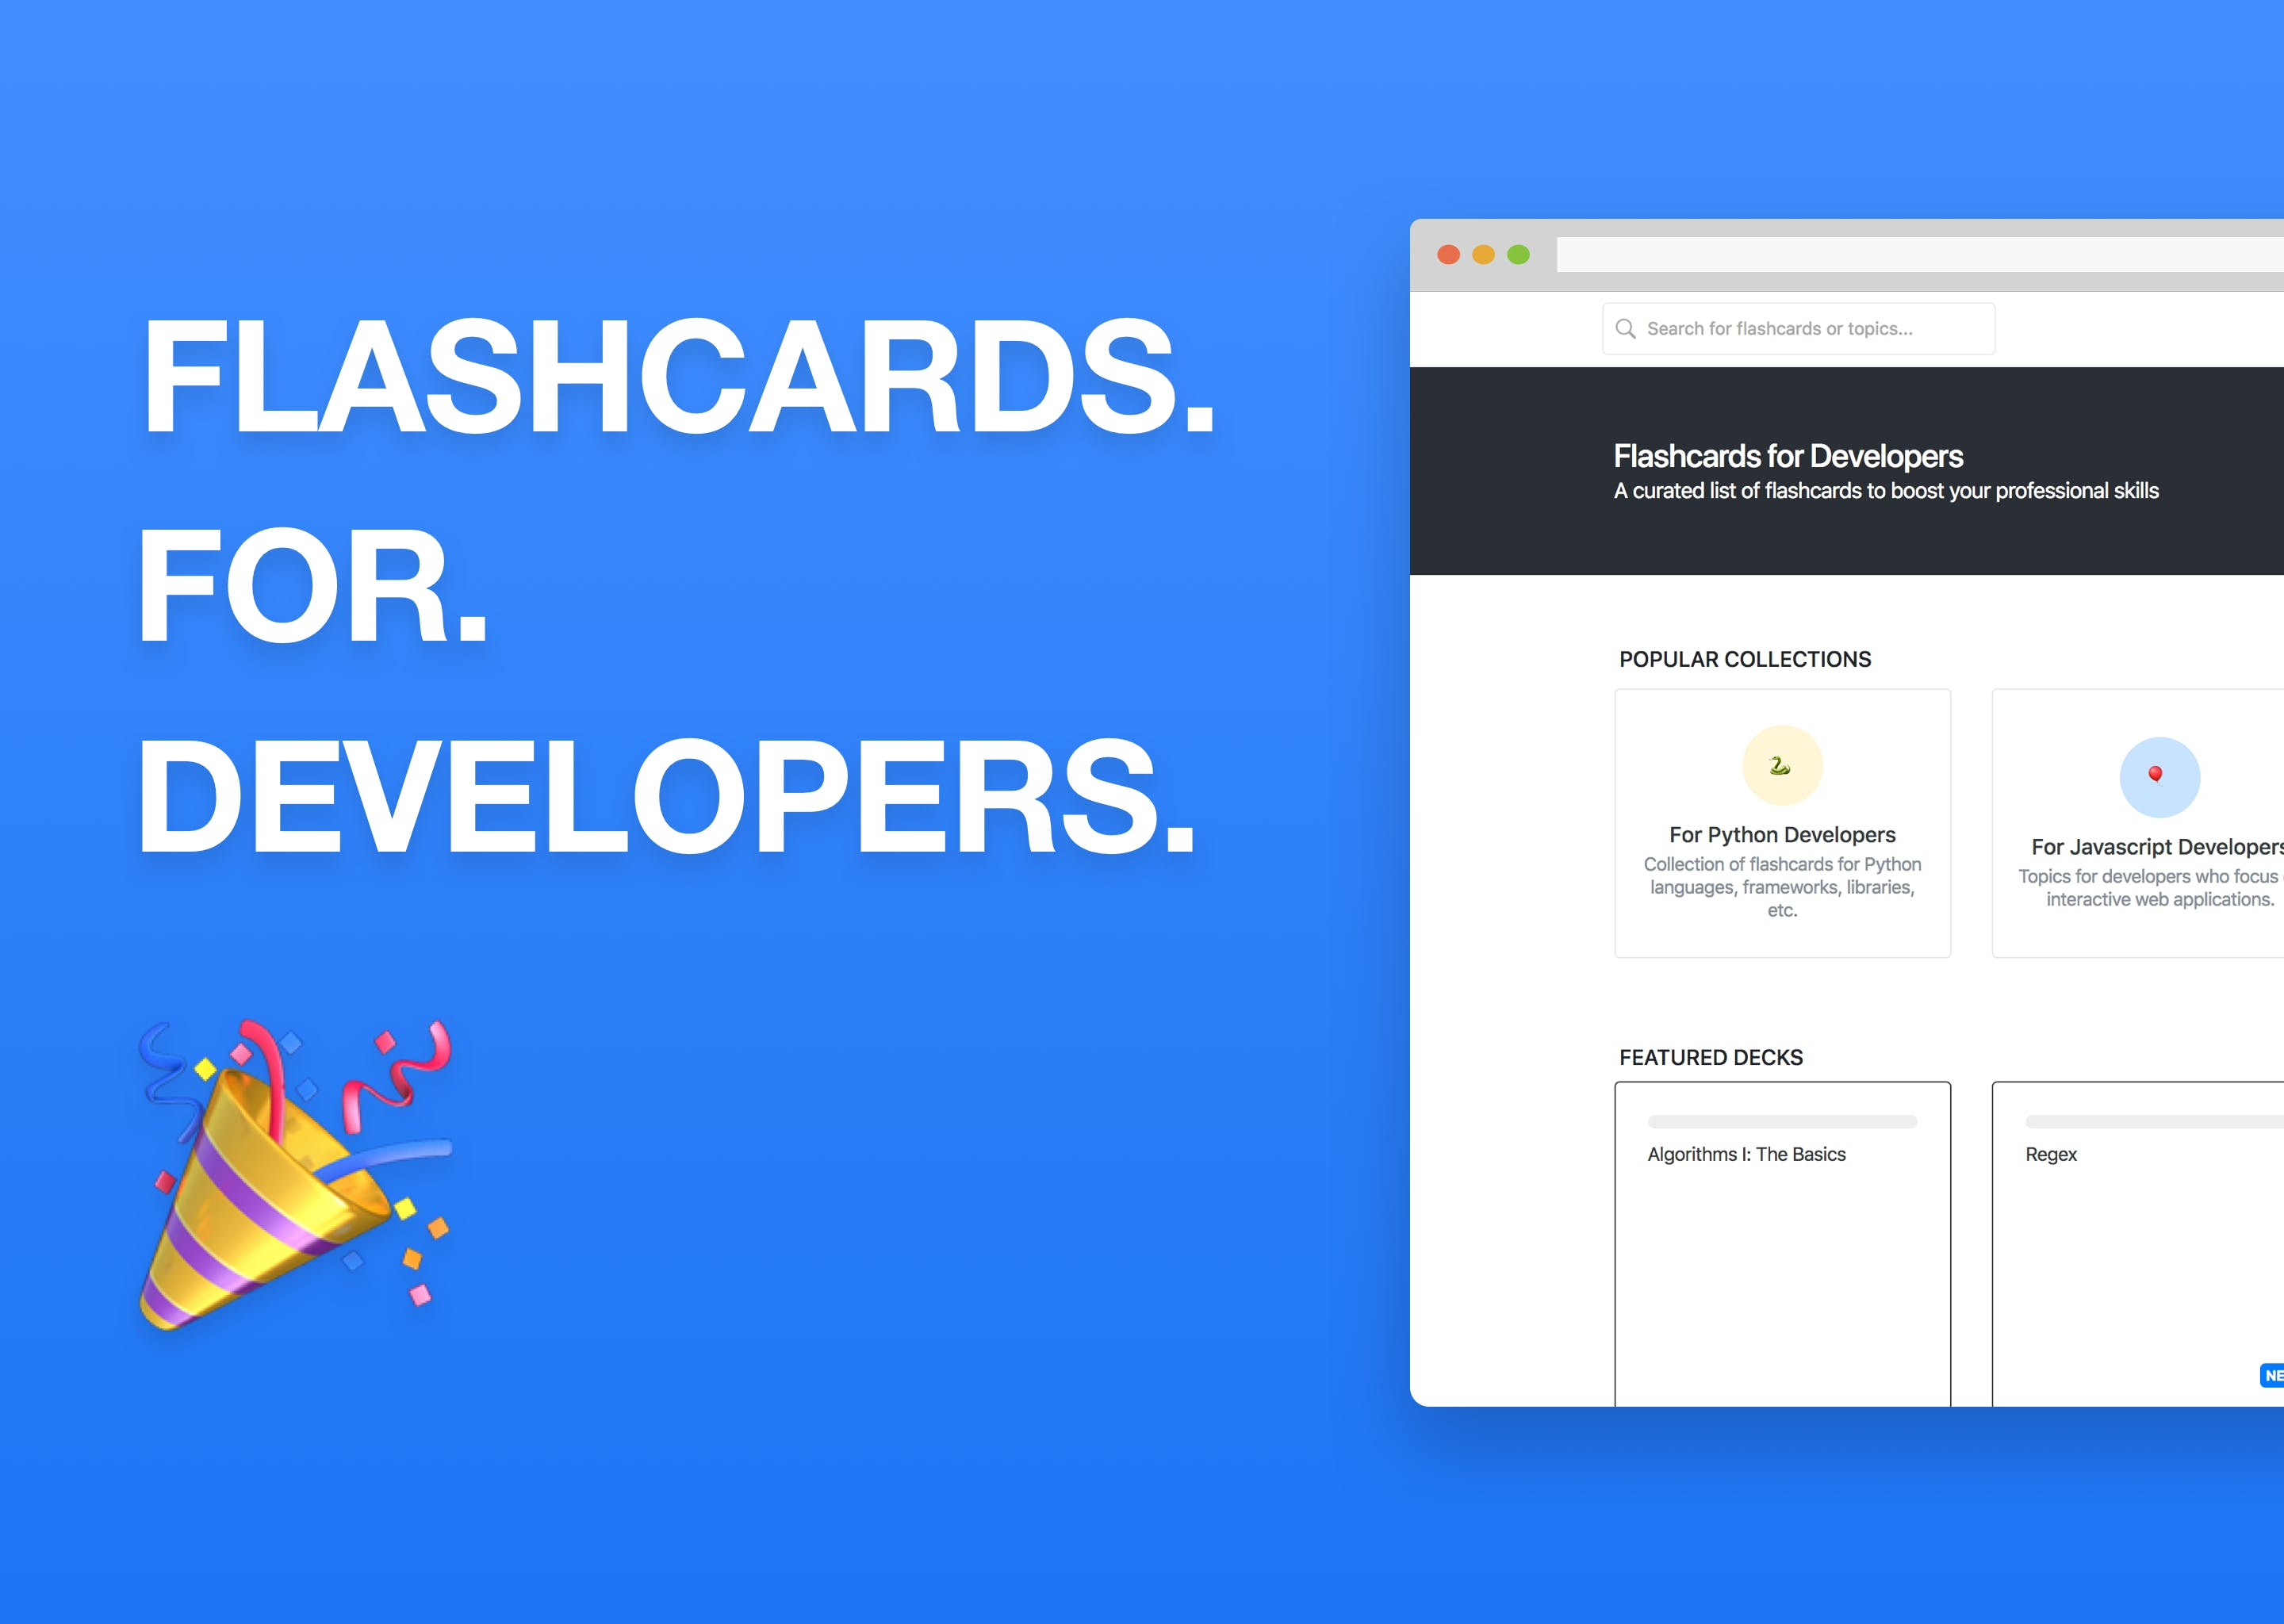 How To Learn to Code With Flashcards for Developers